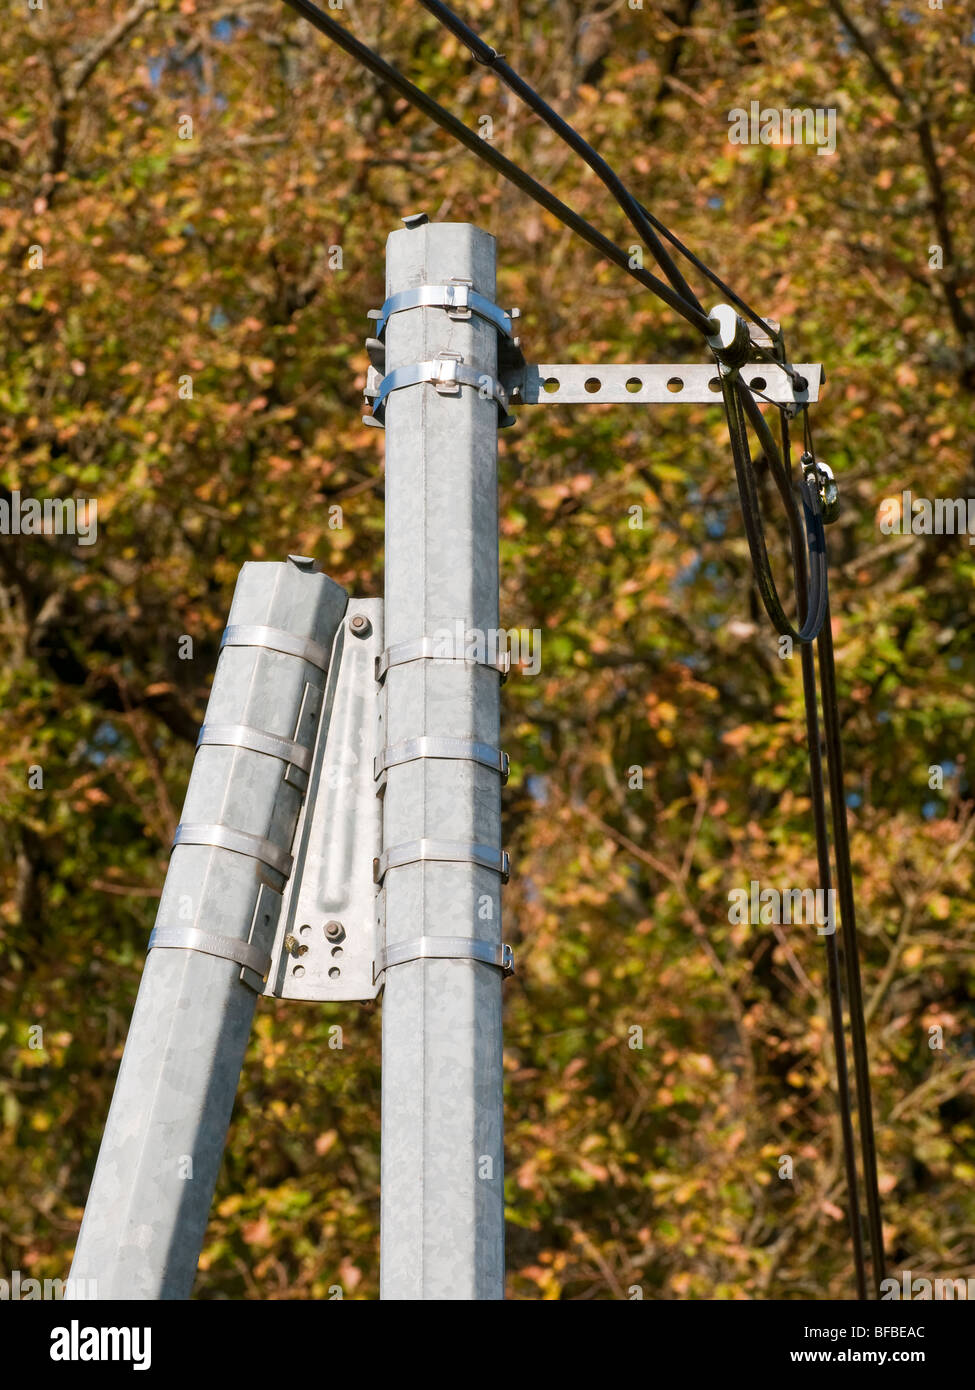 New galvanized metal telephone pole - France. - Stock Image